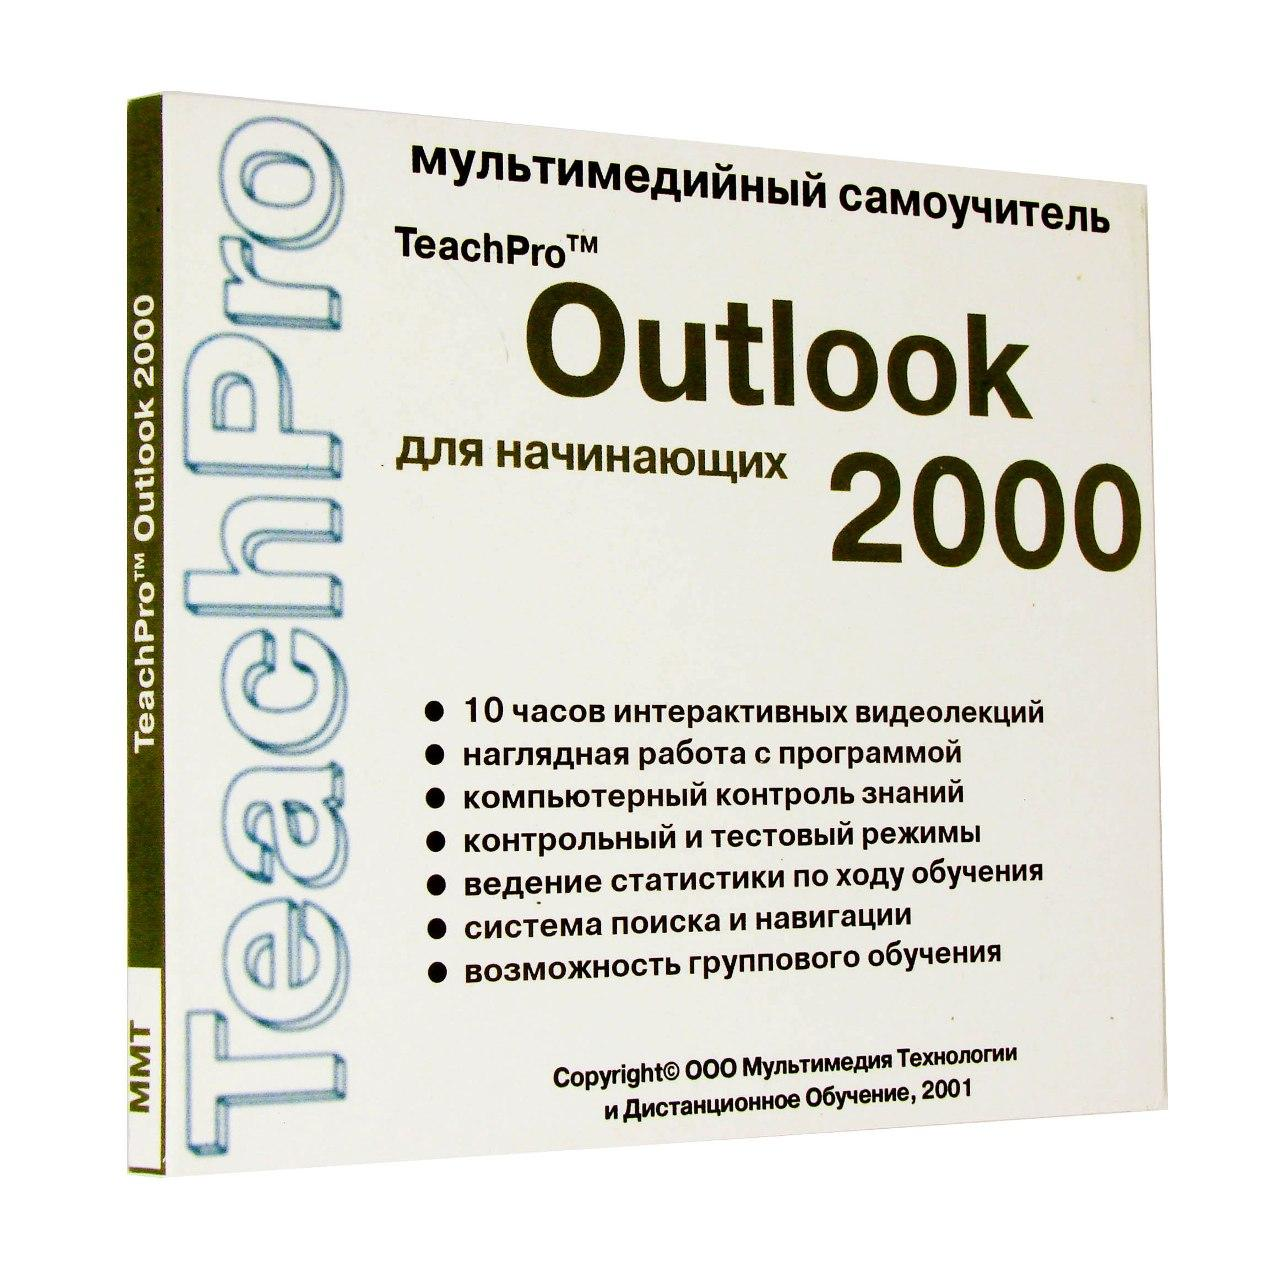 MS Outlook 2000 TeachPro (PC)